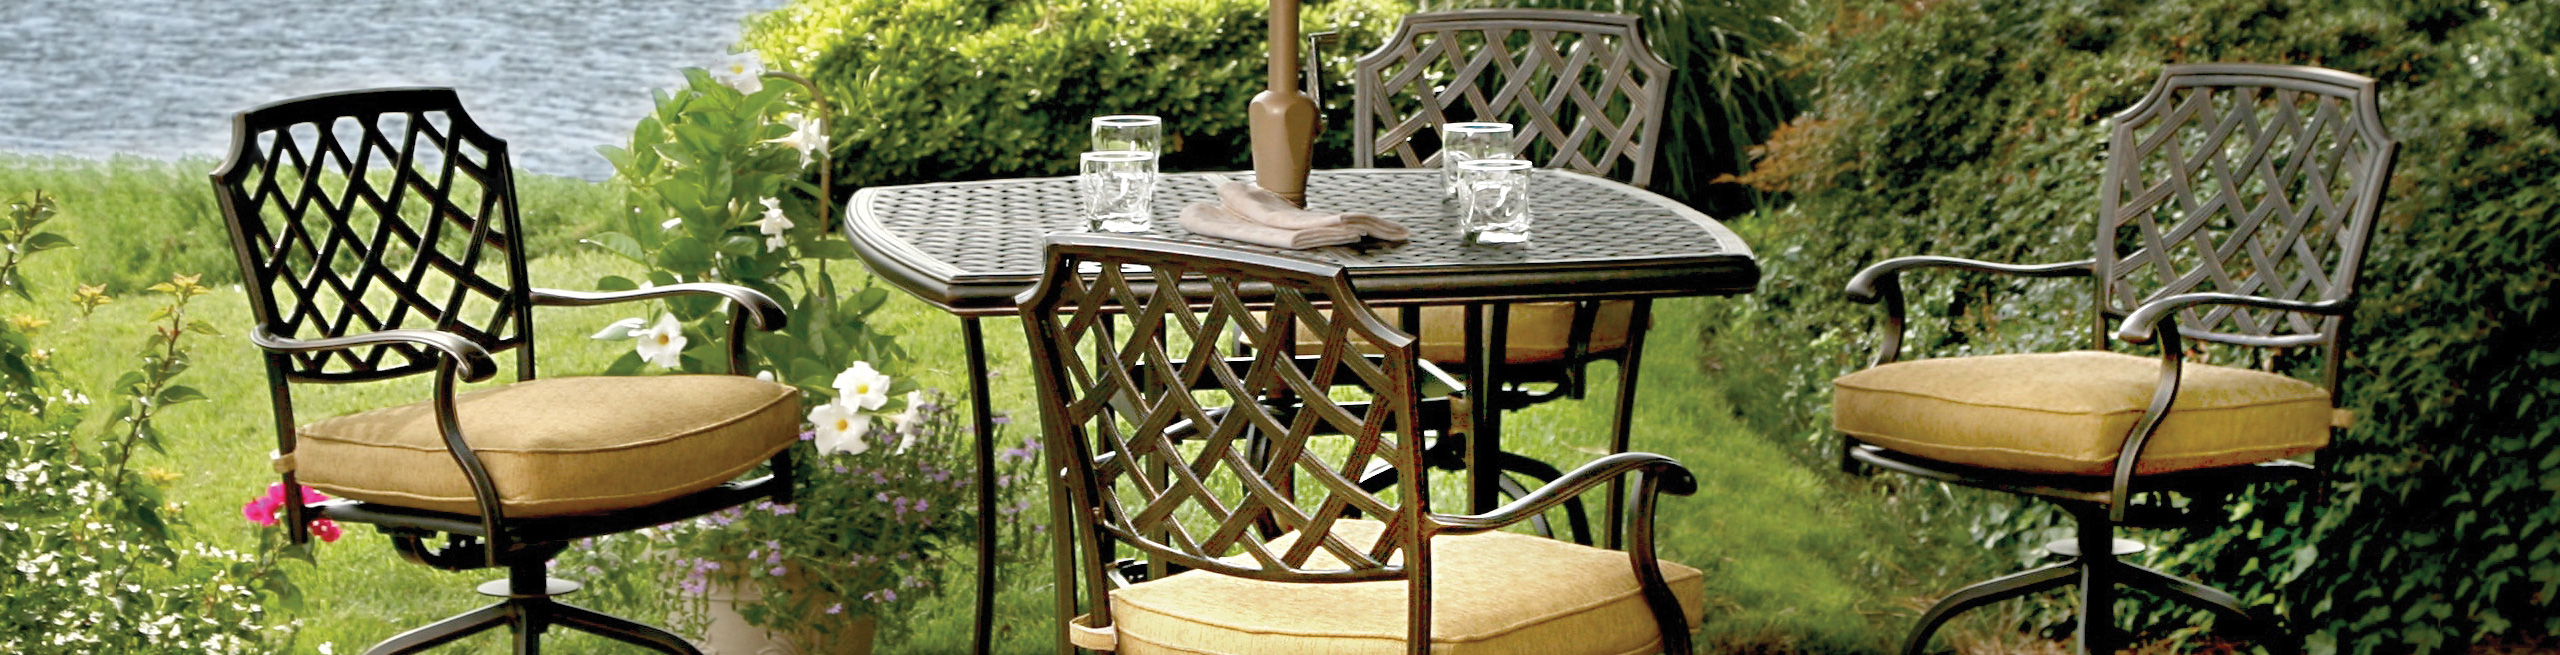 Lowes Outside Furniture | Bar Height Patio Sets | Patio Sets Under $200